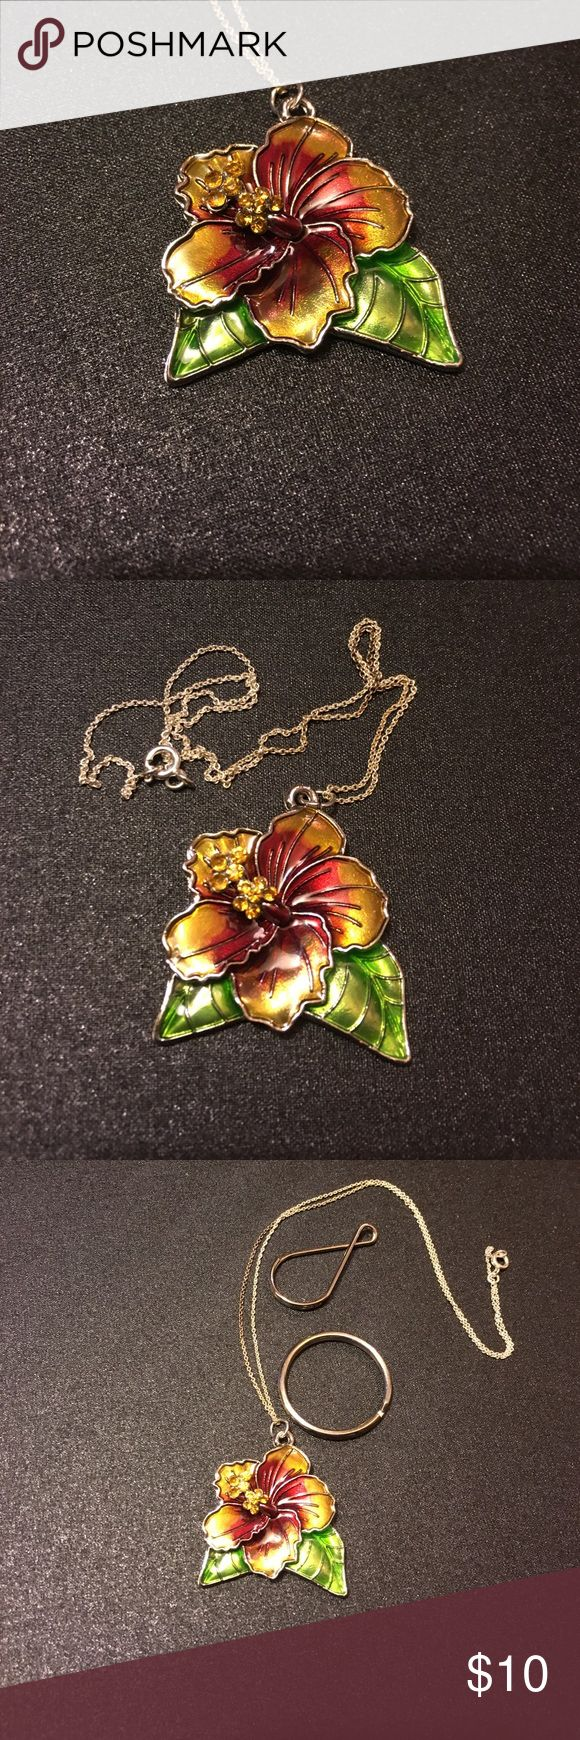 "NWOT - Gorgeous Flower 🌺Necklace NWOT - Gorgeous, colorful flower necklace. 18"" silver chain. Entire flower & leaf circumference is approximately 1 5/8"". Includes two different key chain / handbag charm loops to convert if preferred. Smoke free home. Lowest price on this item. Best price/value in bundles - I offer 15% off for 3+ items. Thanks for looking! Jewelry Necklaces"